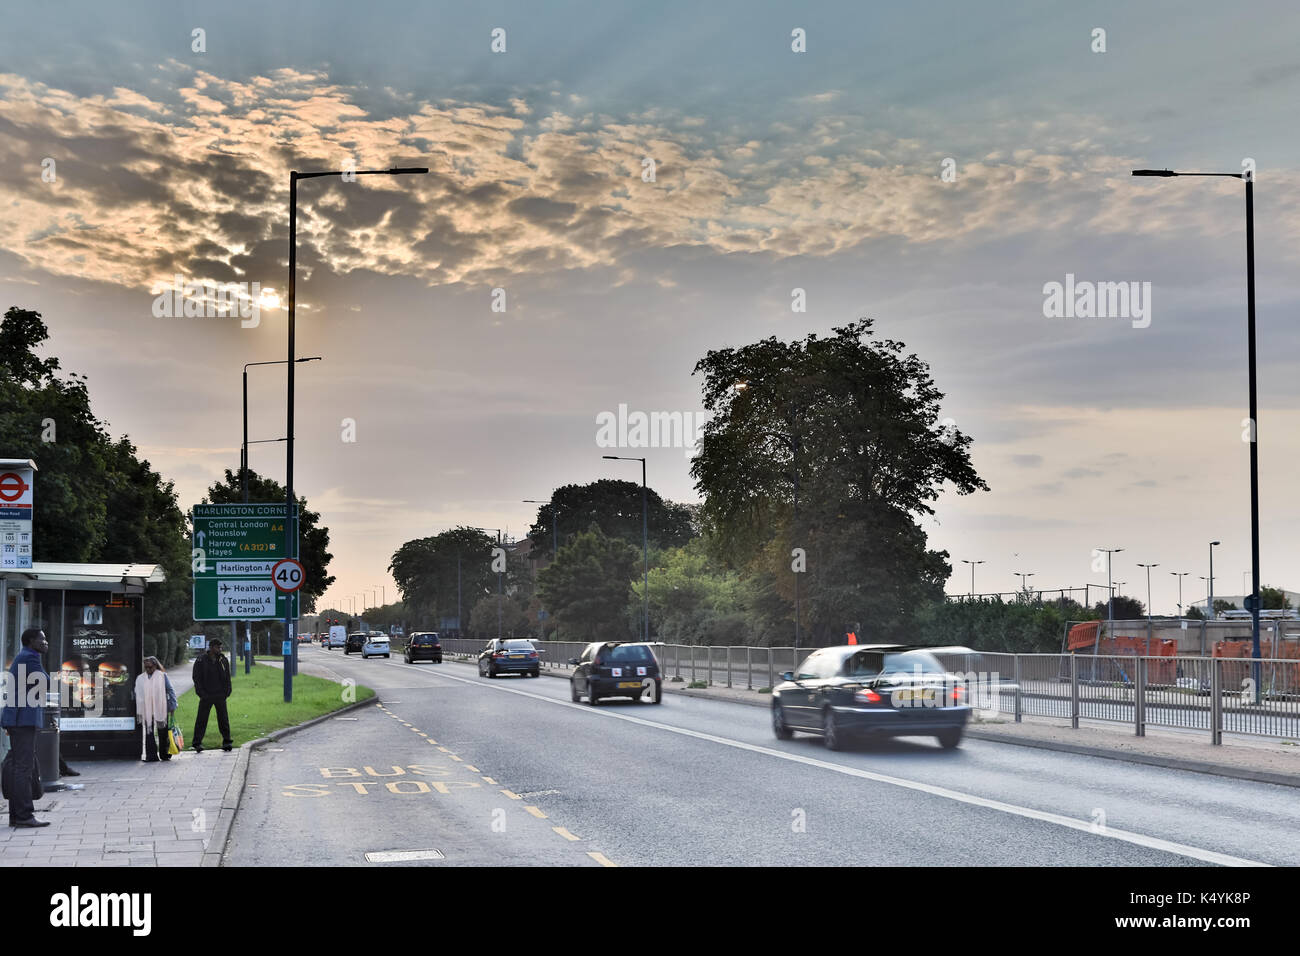 Heathrow Airport Uxbridge London Uk Thursday7th Septemberl 2017 Uk Weathermorning At London Heathrow Airport Credit Wansfordp O Alamy Live